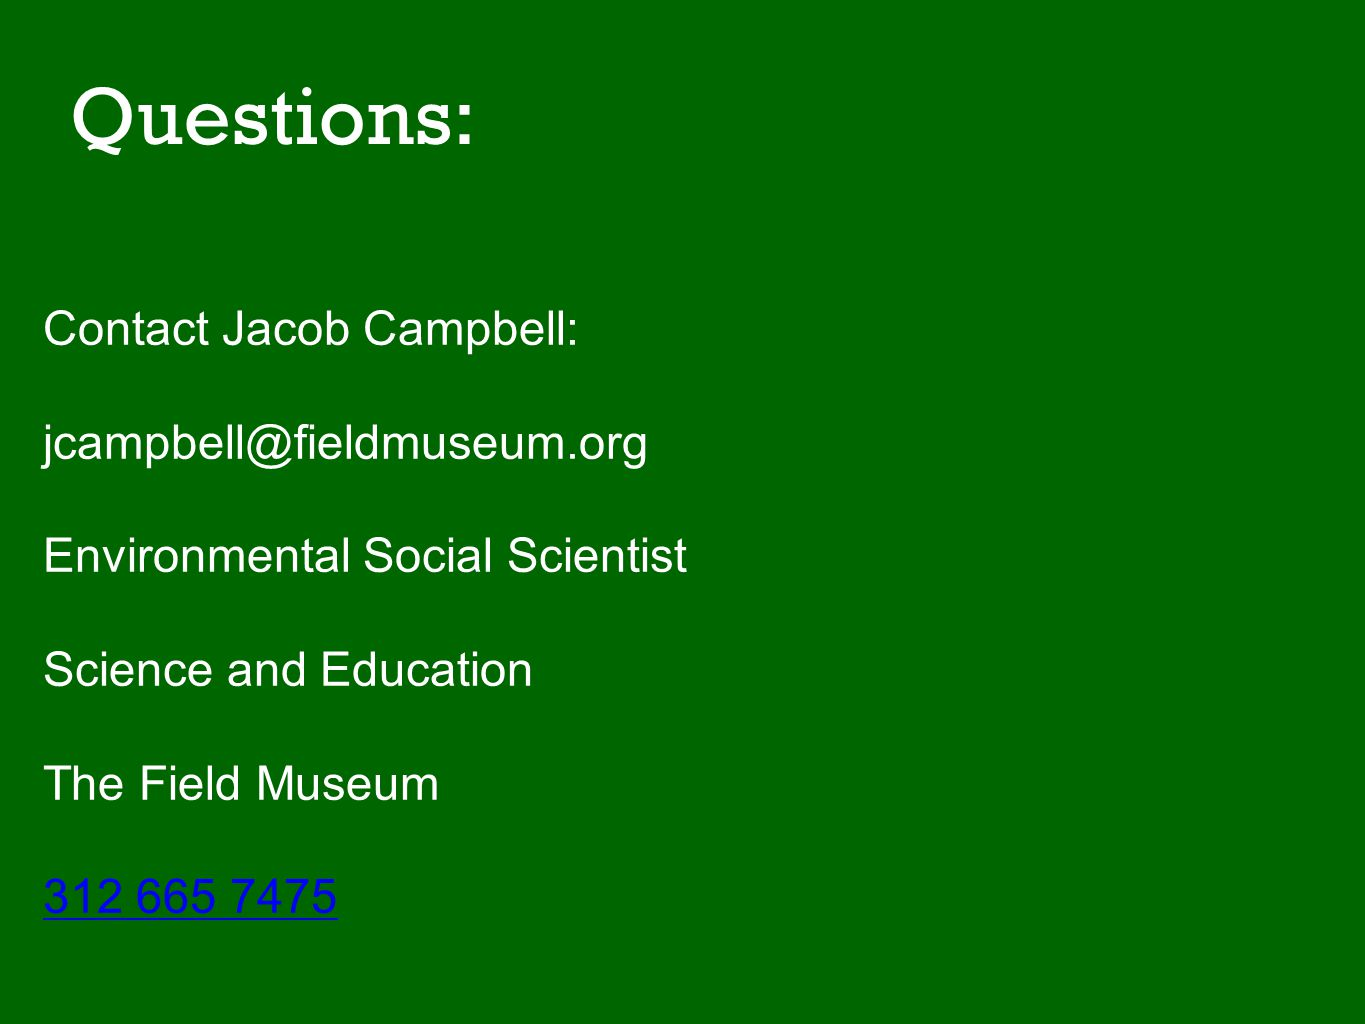 Questions: Contact Jacob Campbell: jcampbell@fieldmuseum.org Environmental Social Scientist Science and Education The Field Museum 312 665 7475 Jacob